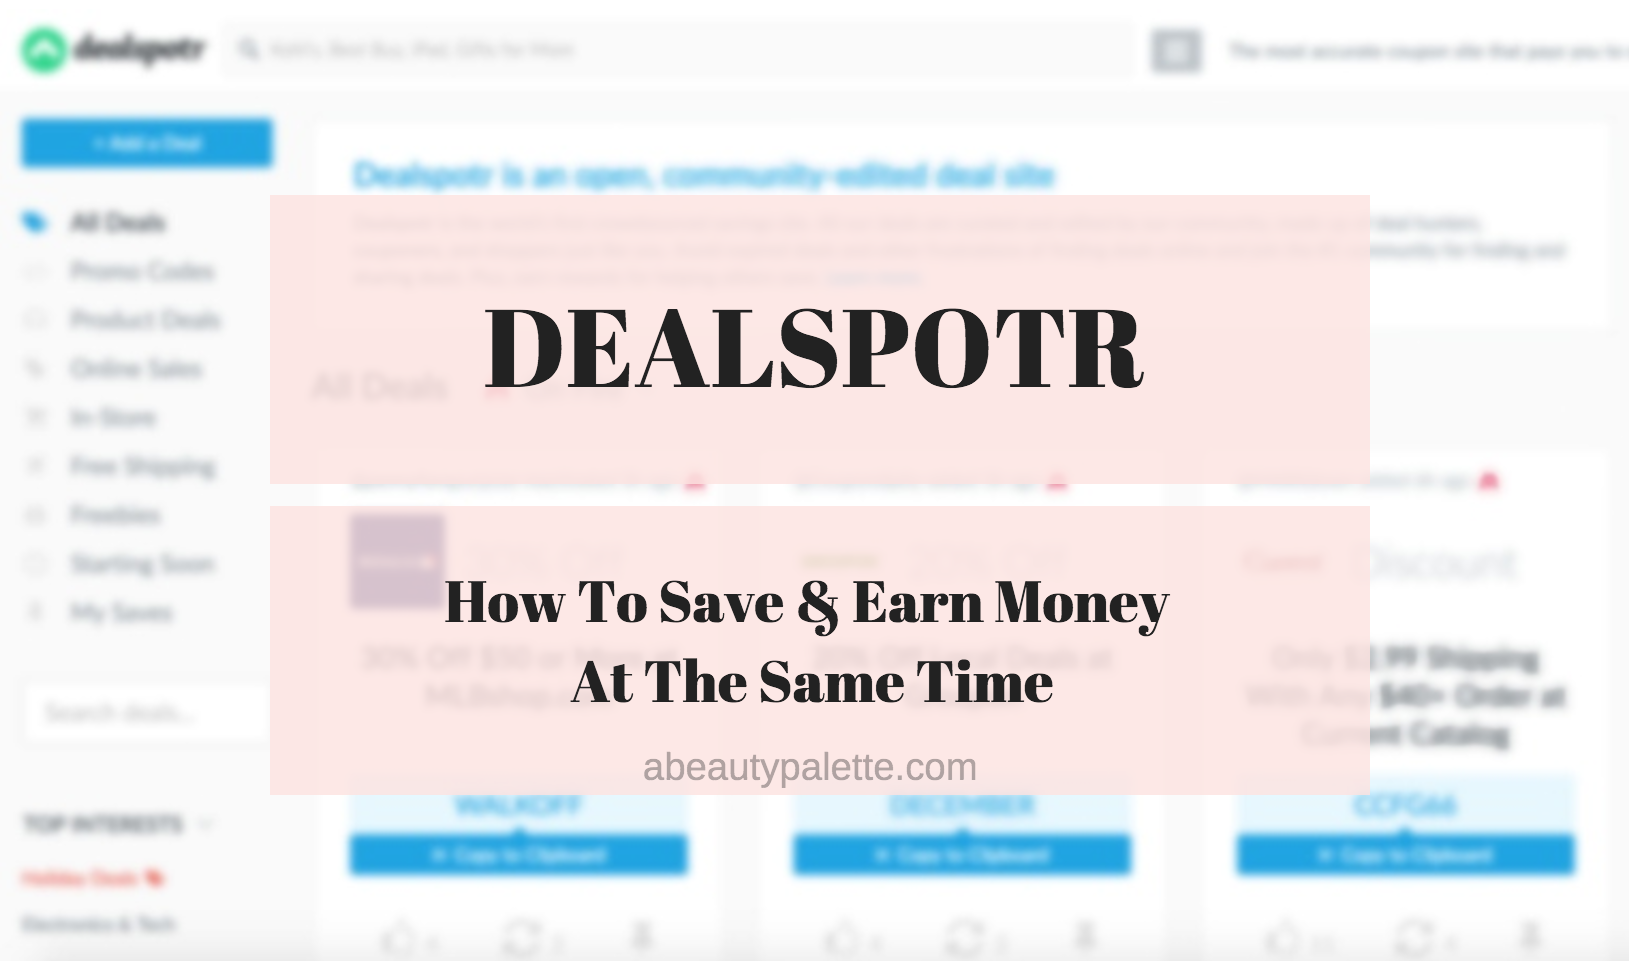 Dealspotr.com review